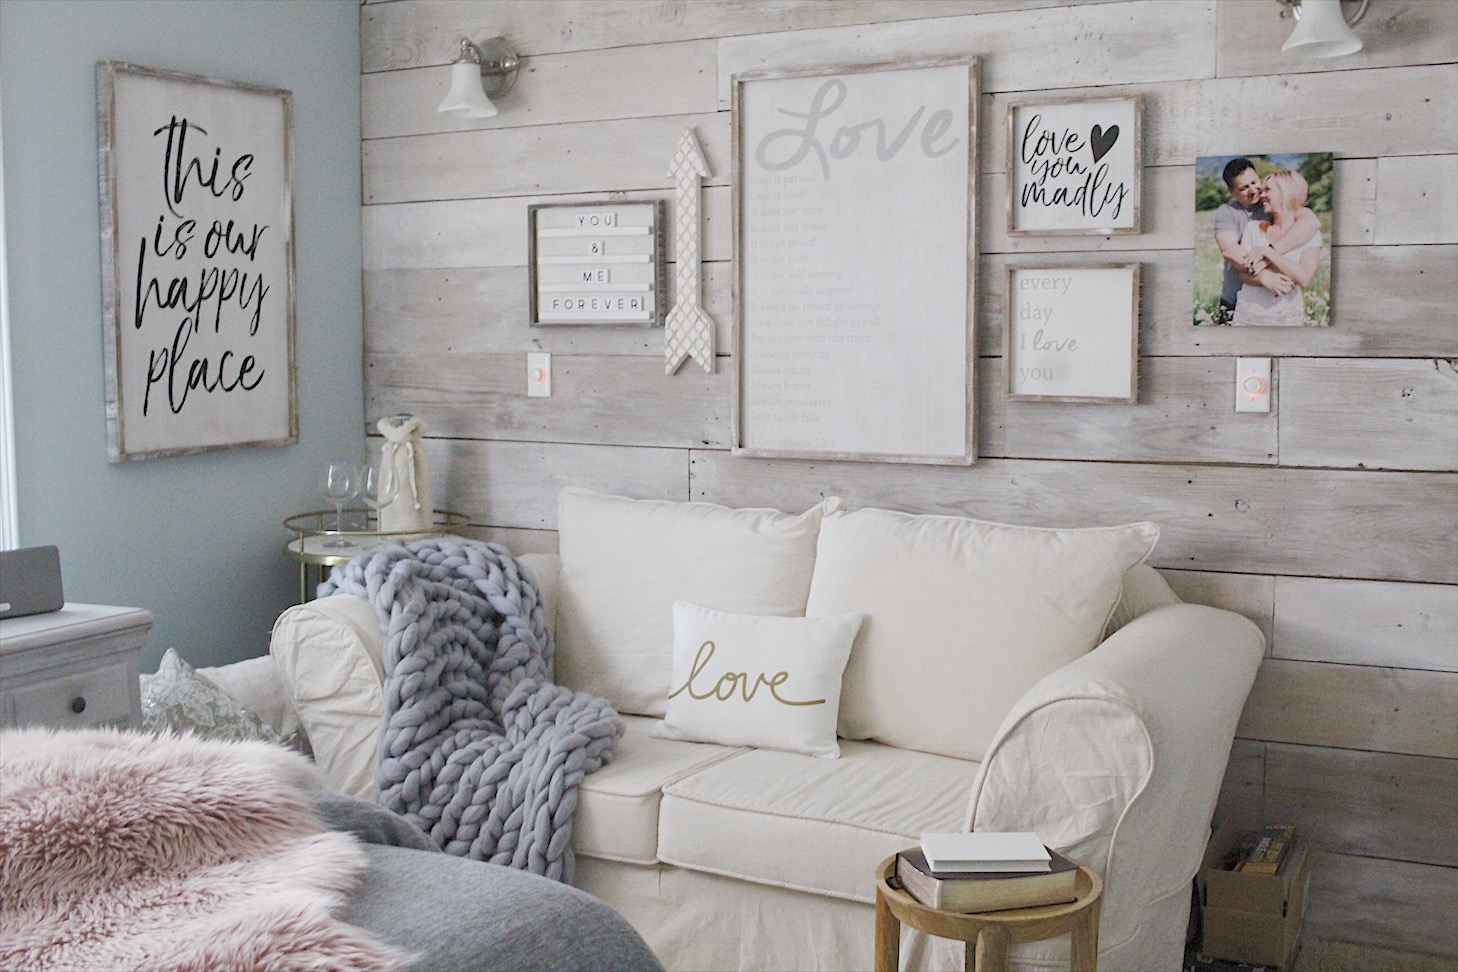 Gallery wall via Krumpet's Home Decor